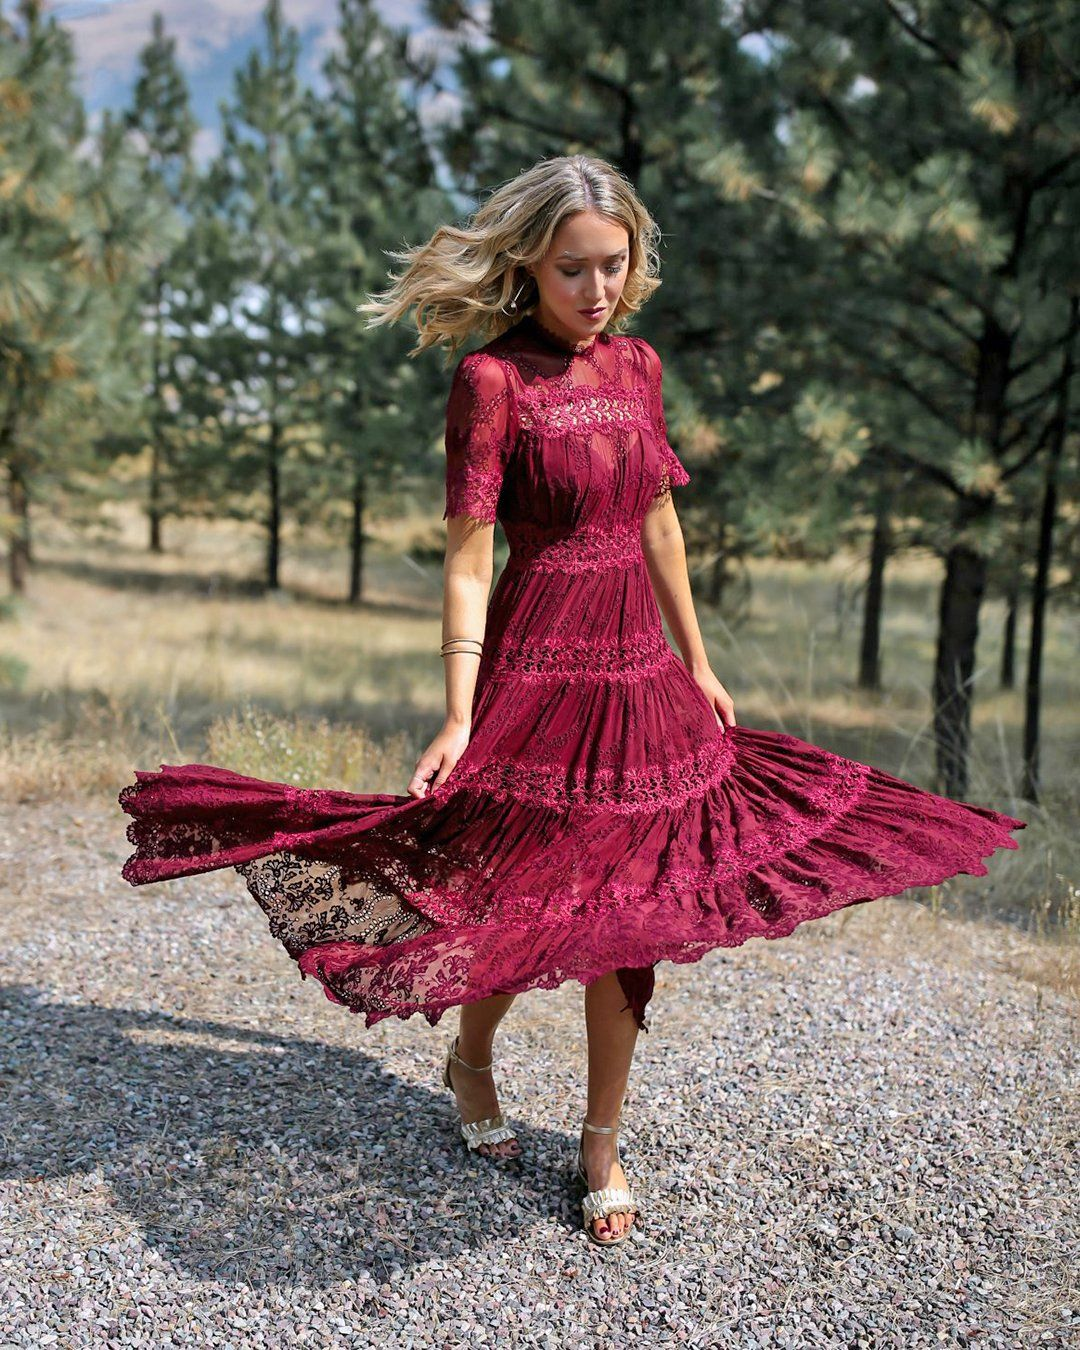 30 Wedding Guest Dresses For Every Seasons Style In 2021 Wedding Guest Dress Fall Wedding Guest Dress Bridesmaid Dresses With Sleeves [ 1350 x 1080 Pixel ]